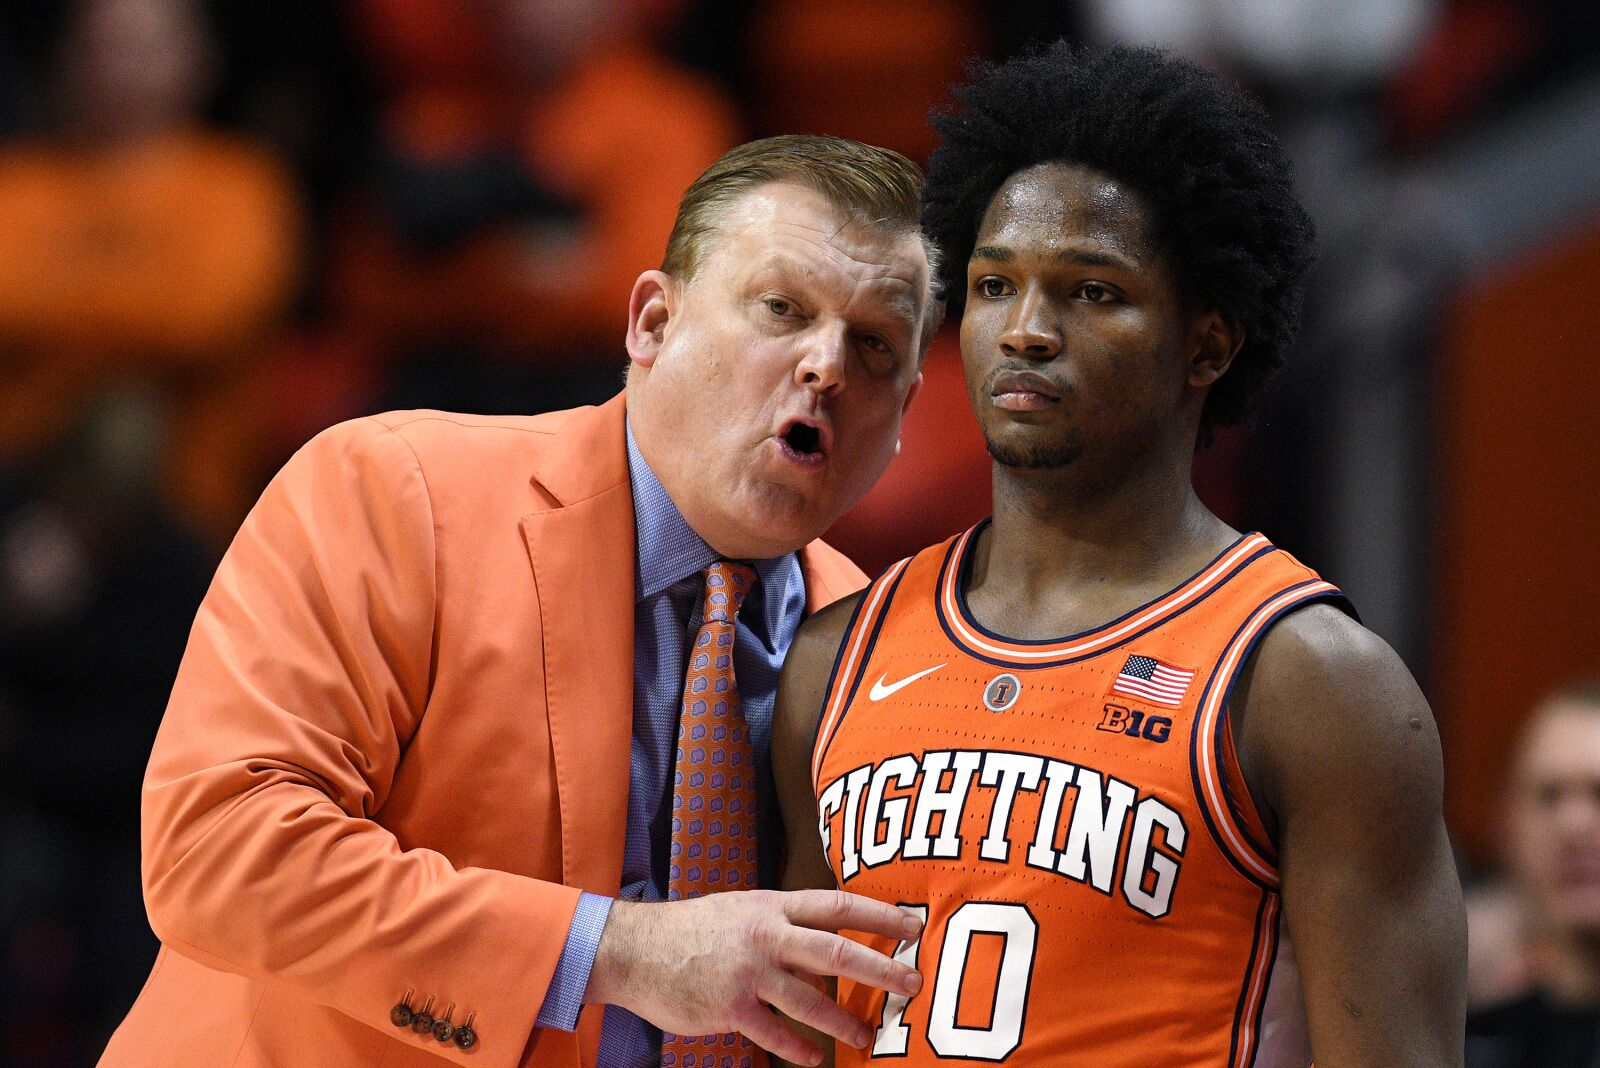 Illinois Basketball: Illini appear on the first AP Top 25 poll